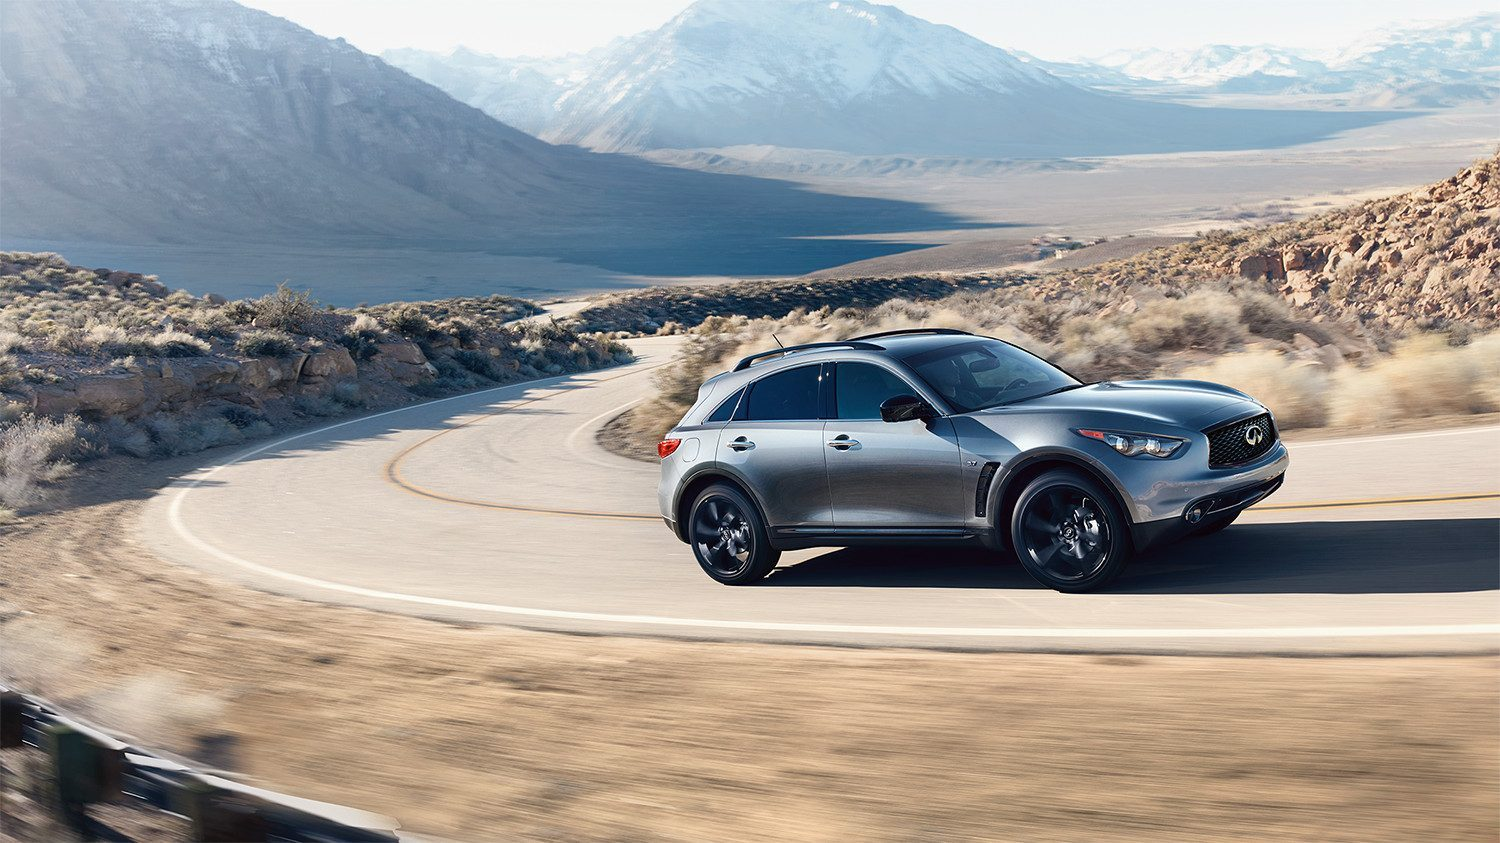 INFINITI QX70 Crossover SUV Exterior Sports Car Inspired Silhouette 2